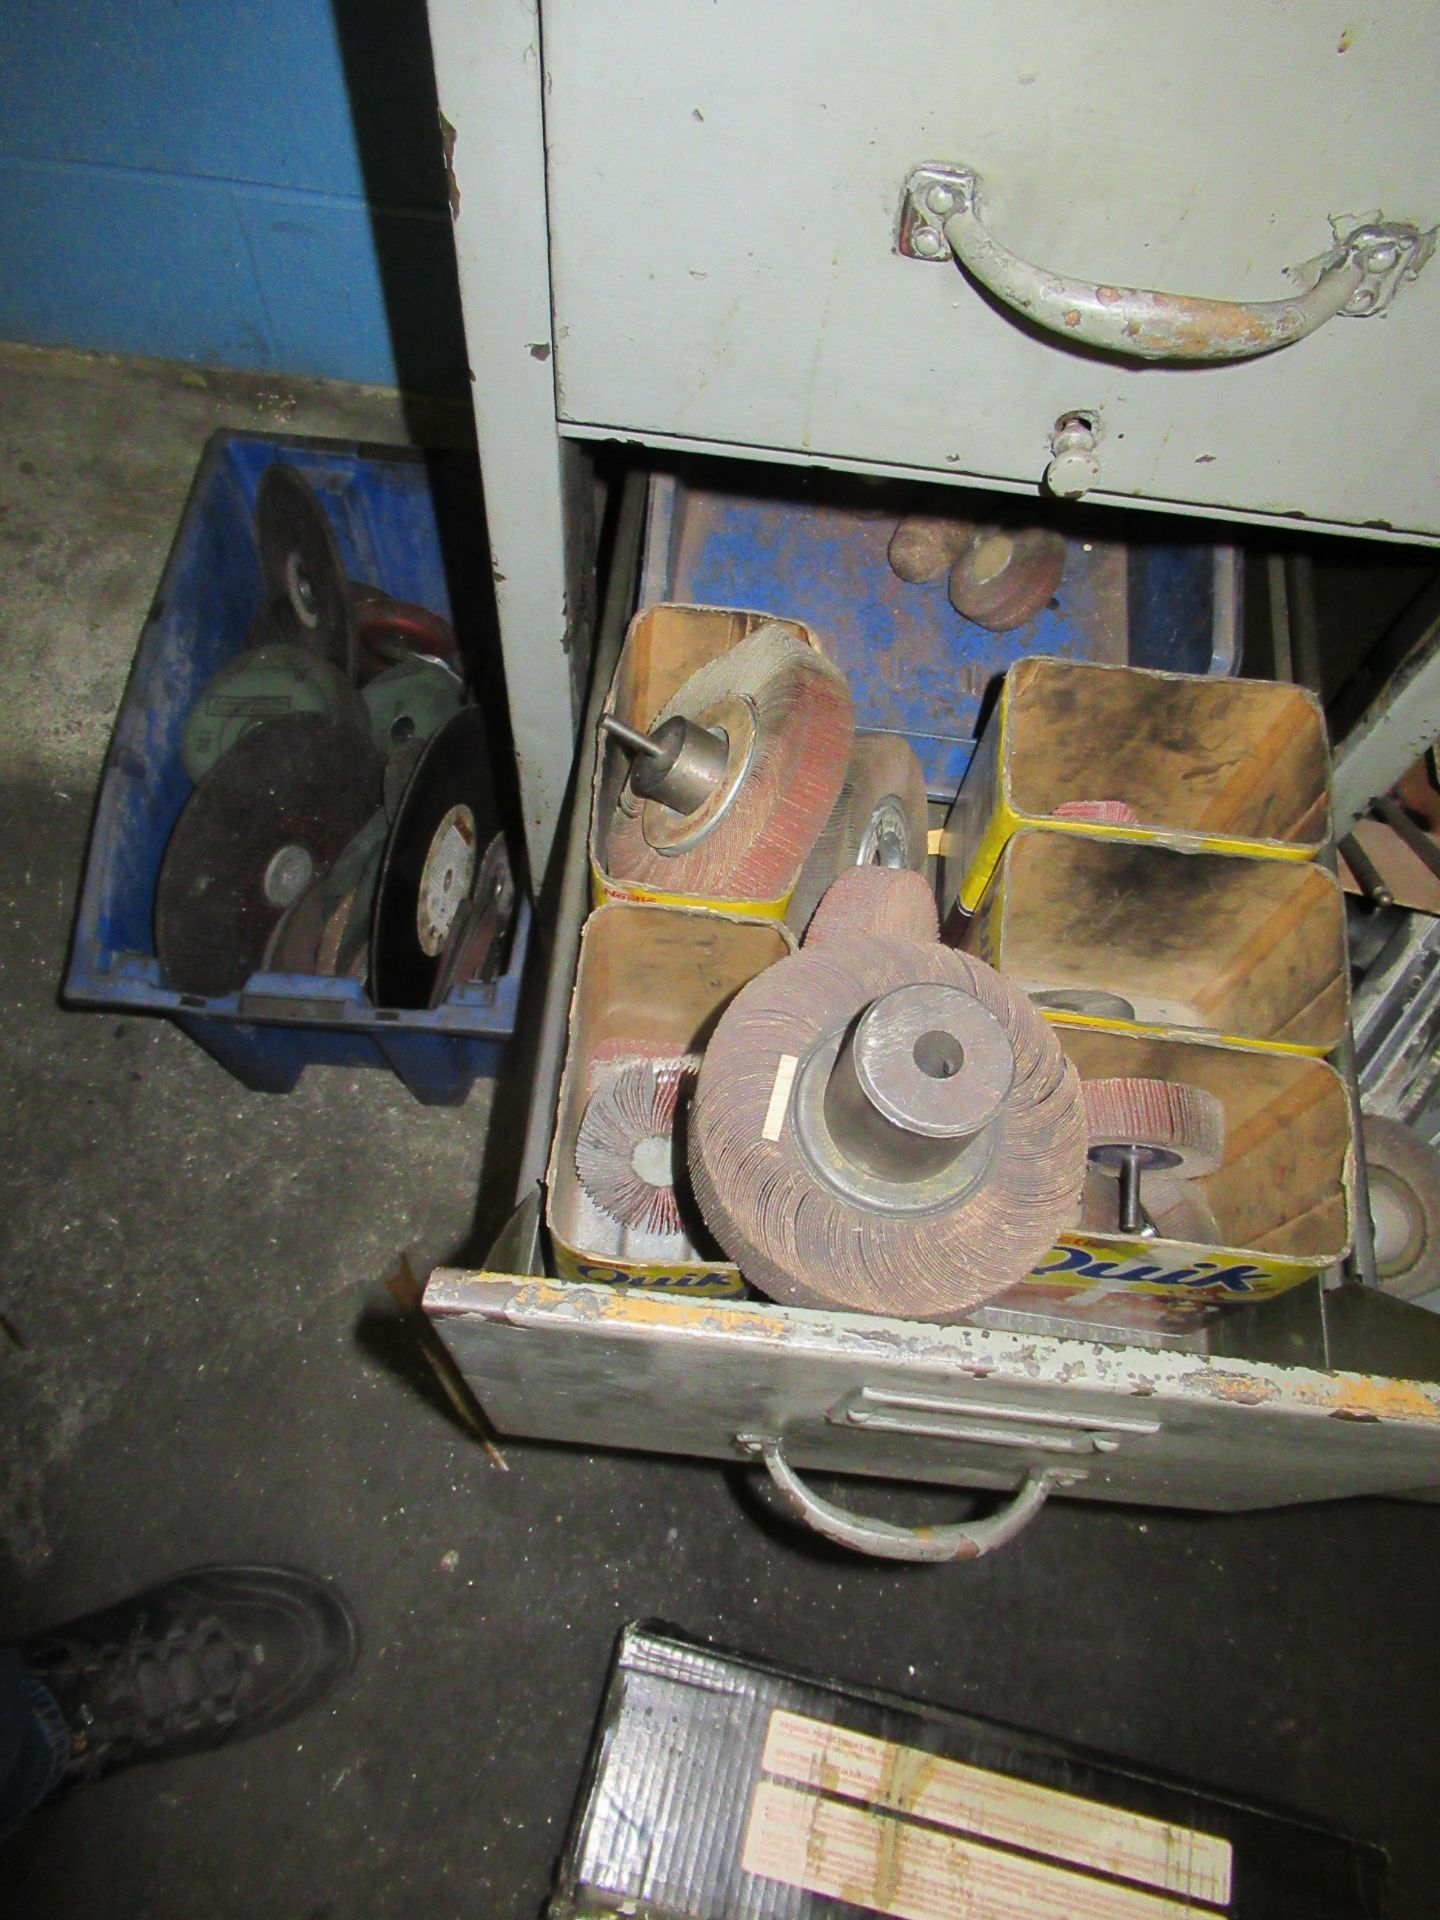 CABINETS OF ASSORTED SANDING WHEELS, GRINDING STONES CUT OFF BLADES, ETC - Image 4 of 4